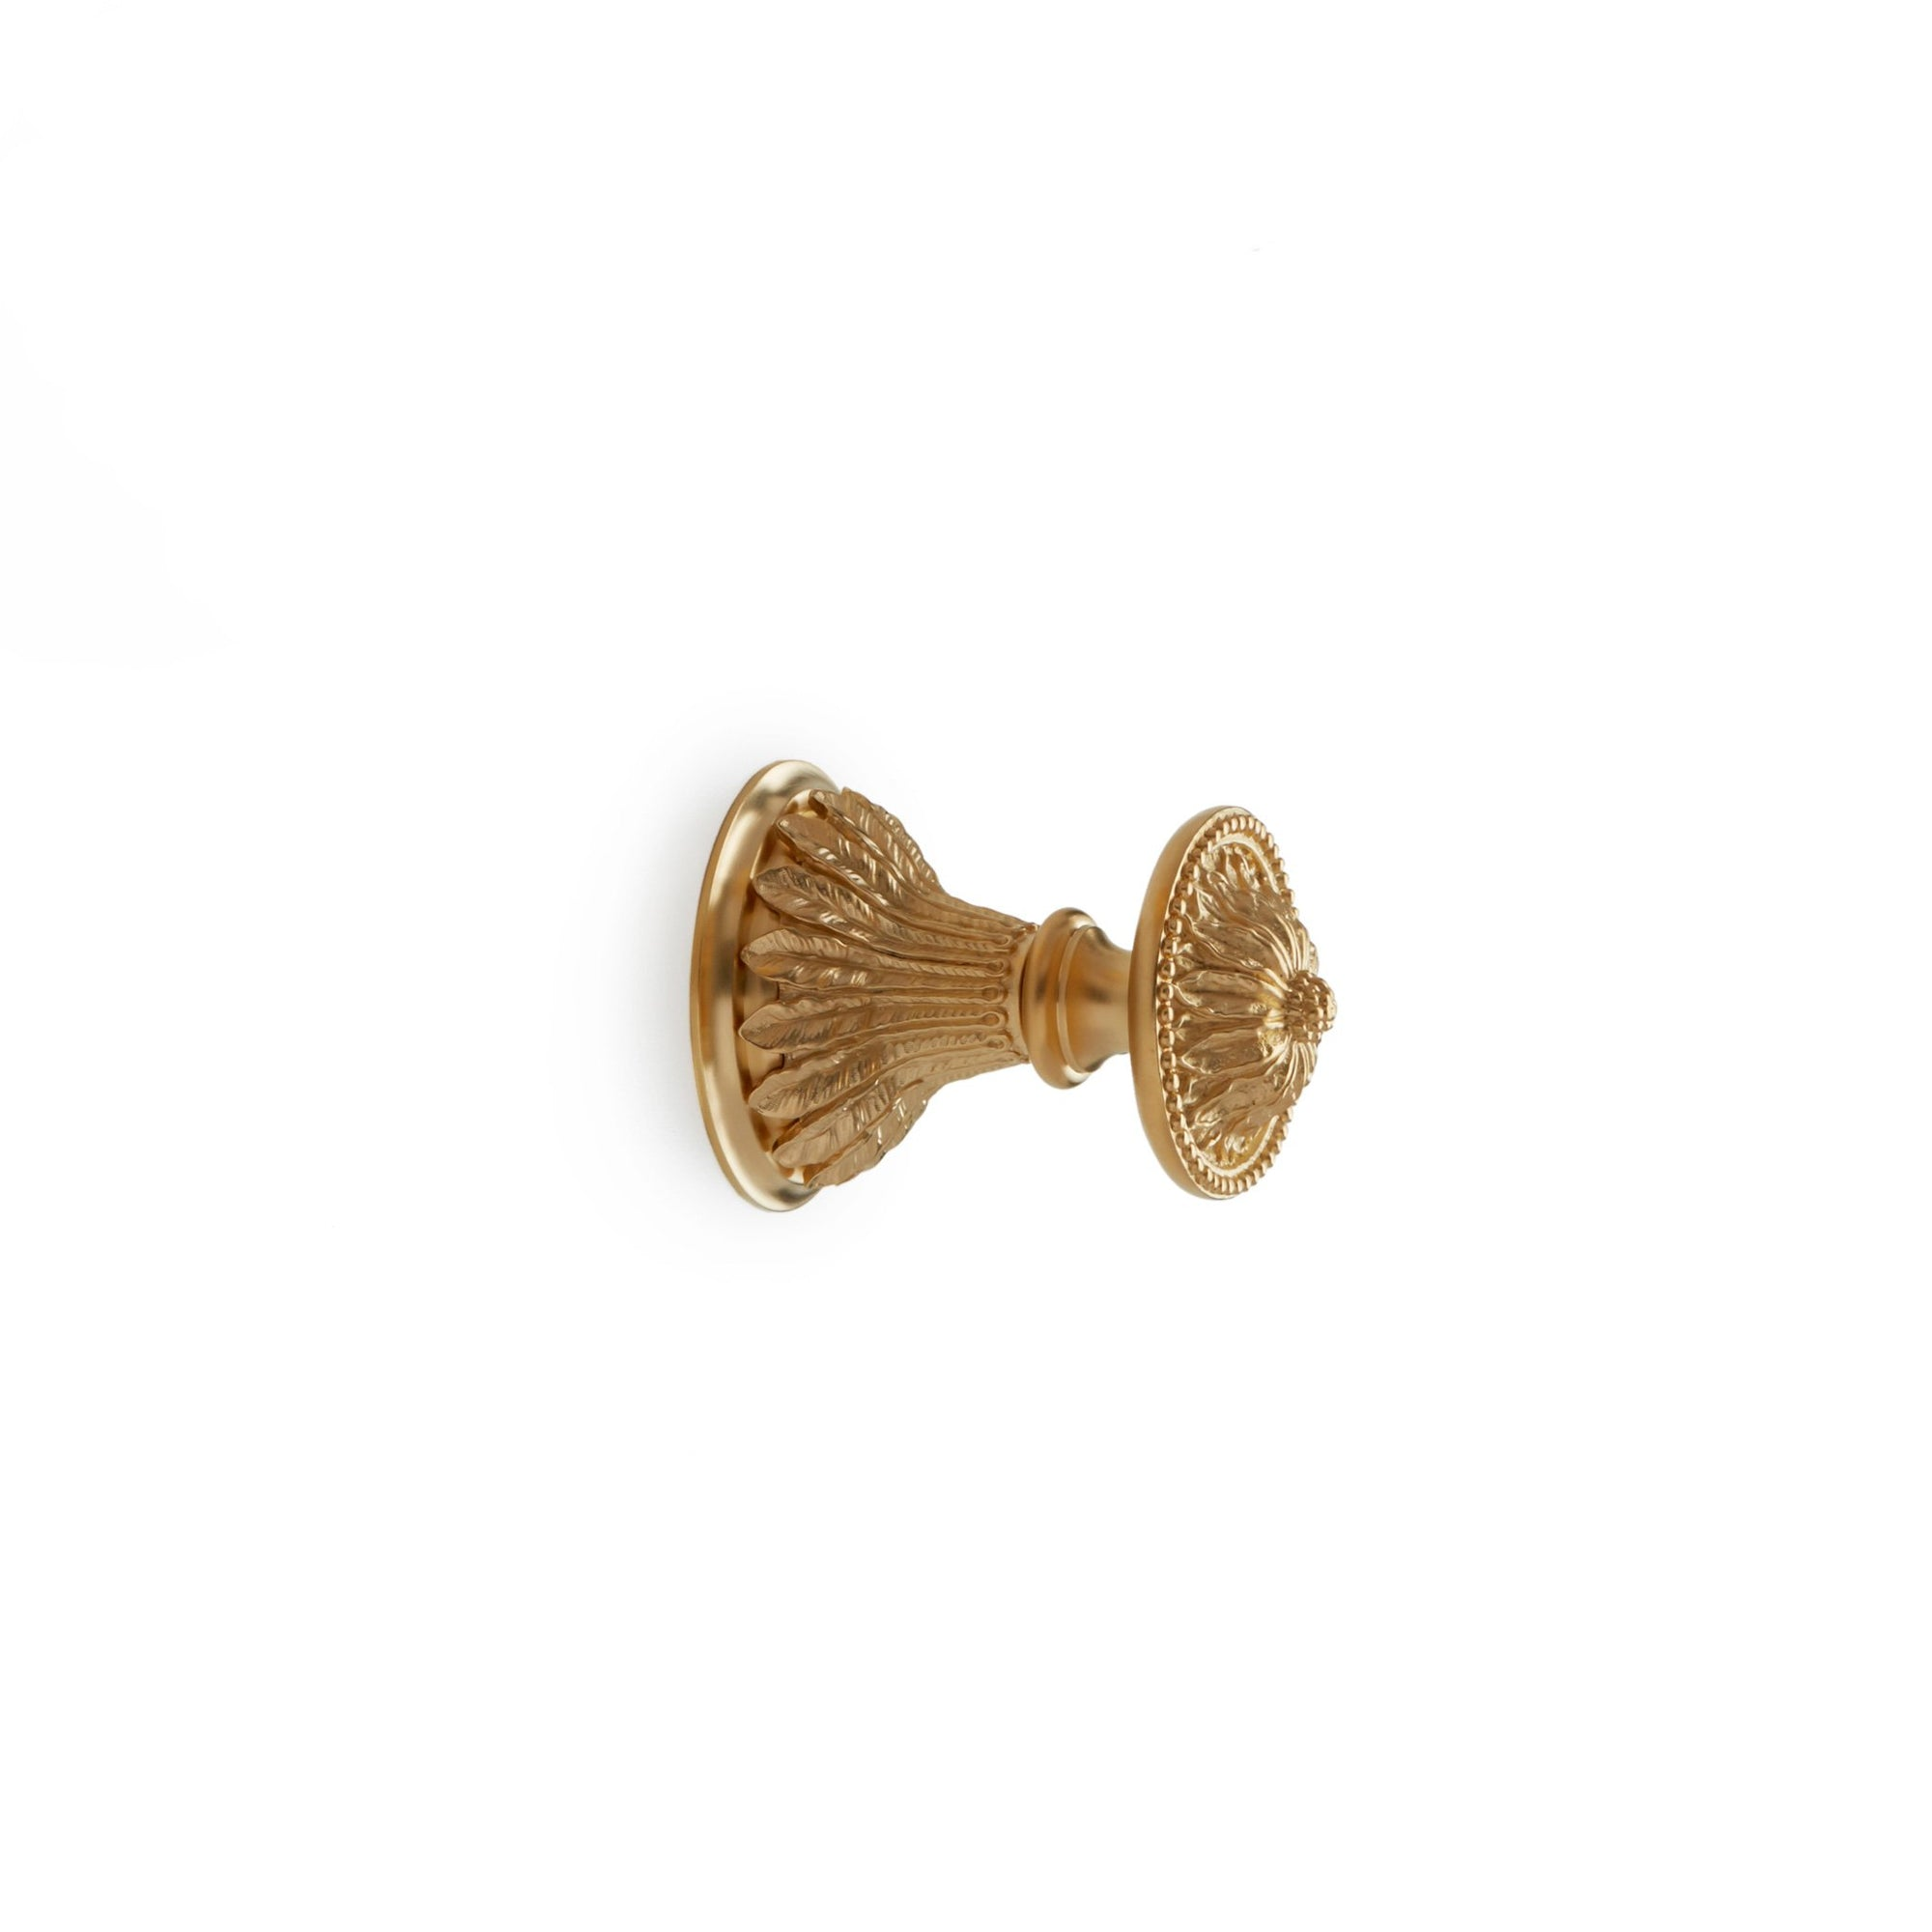 0918KB-ESC-GP Sherle Wagner International Acanthus Knob Volume Control and Diverter Trim in Gold Plate metal finish